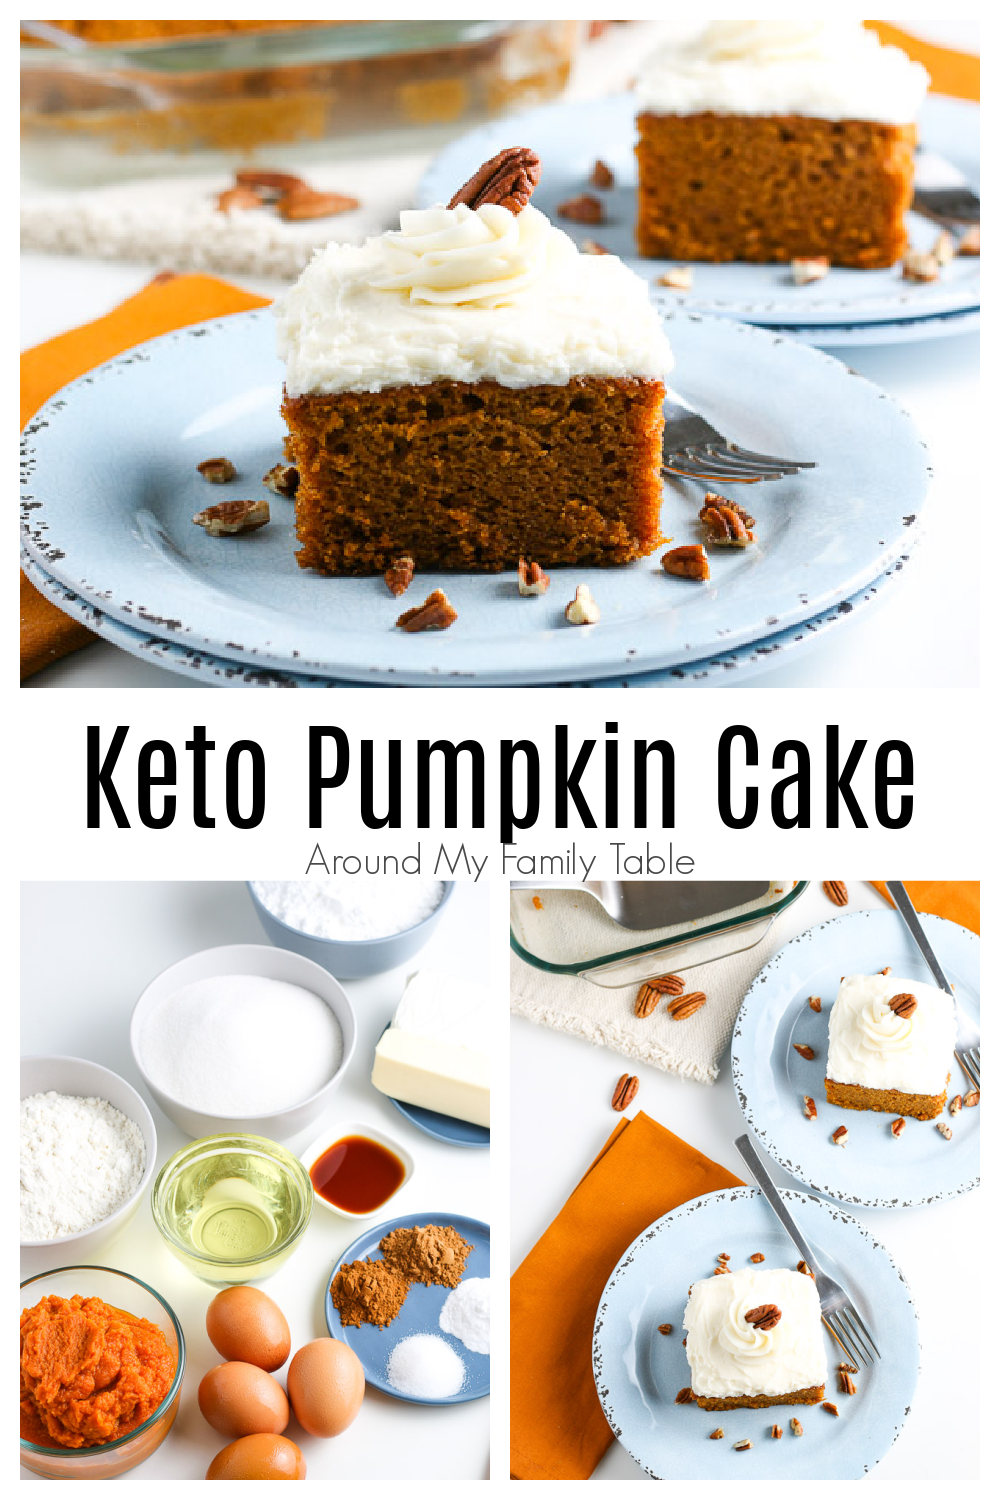 Keto Pumpkin Cake is such a simple, delicious cake to get that fall pumpkin fix.  It's topped with a scrumptious cream cheese frosting which makes it a perfect dessert.  via @slingmama